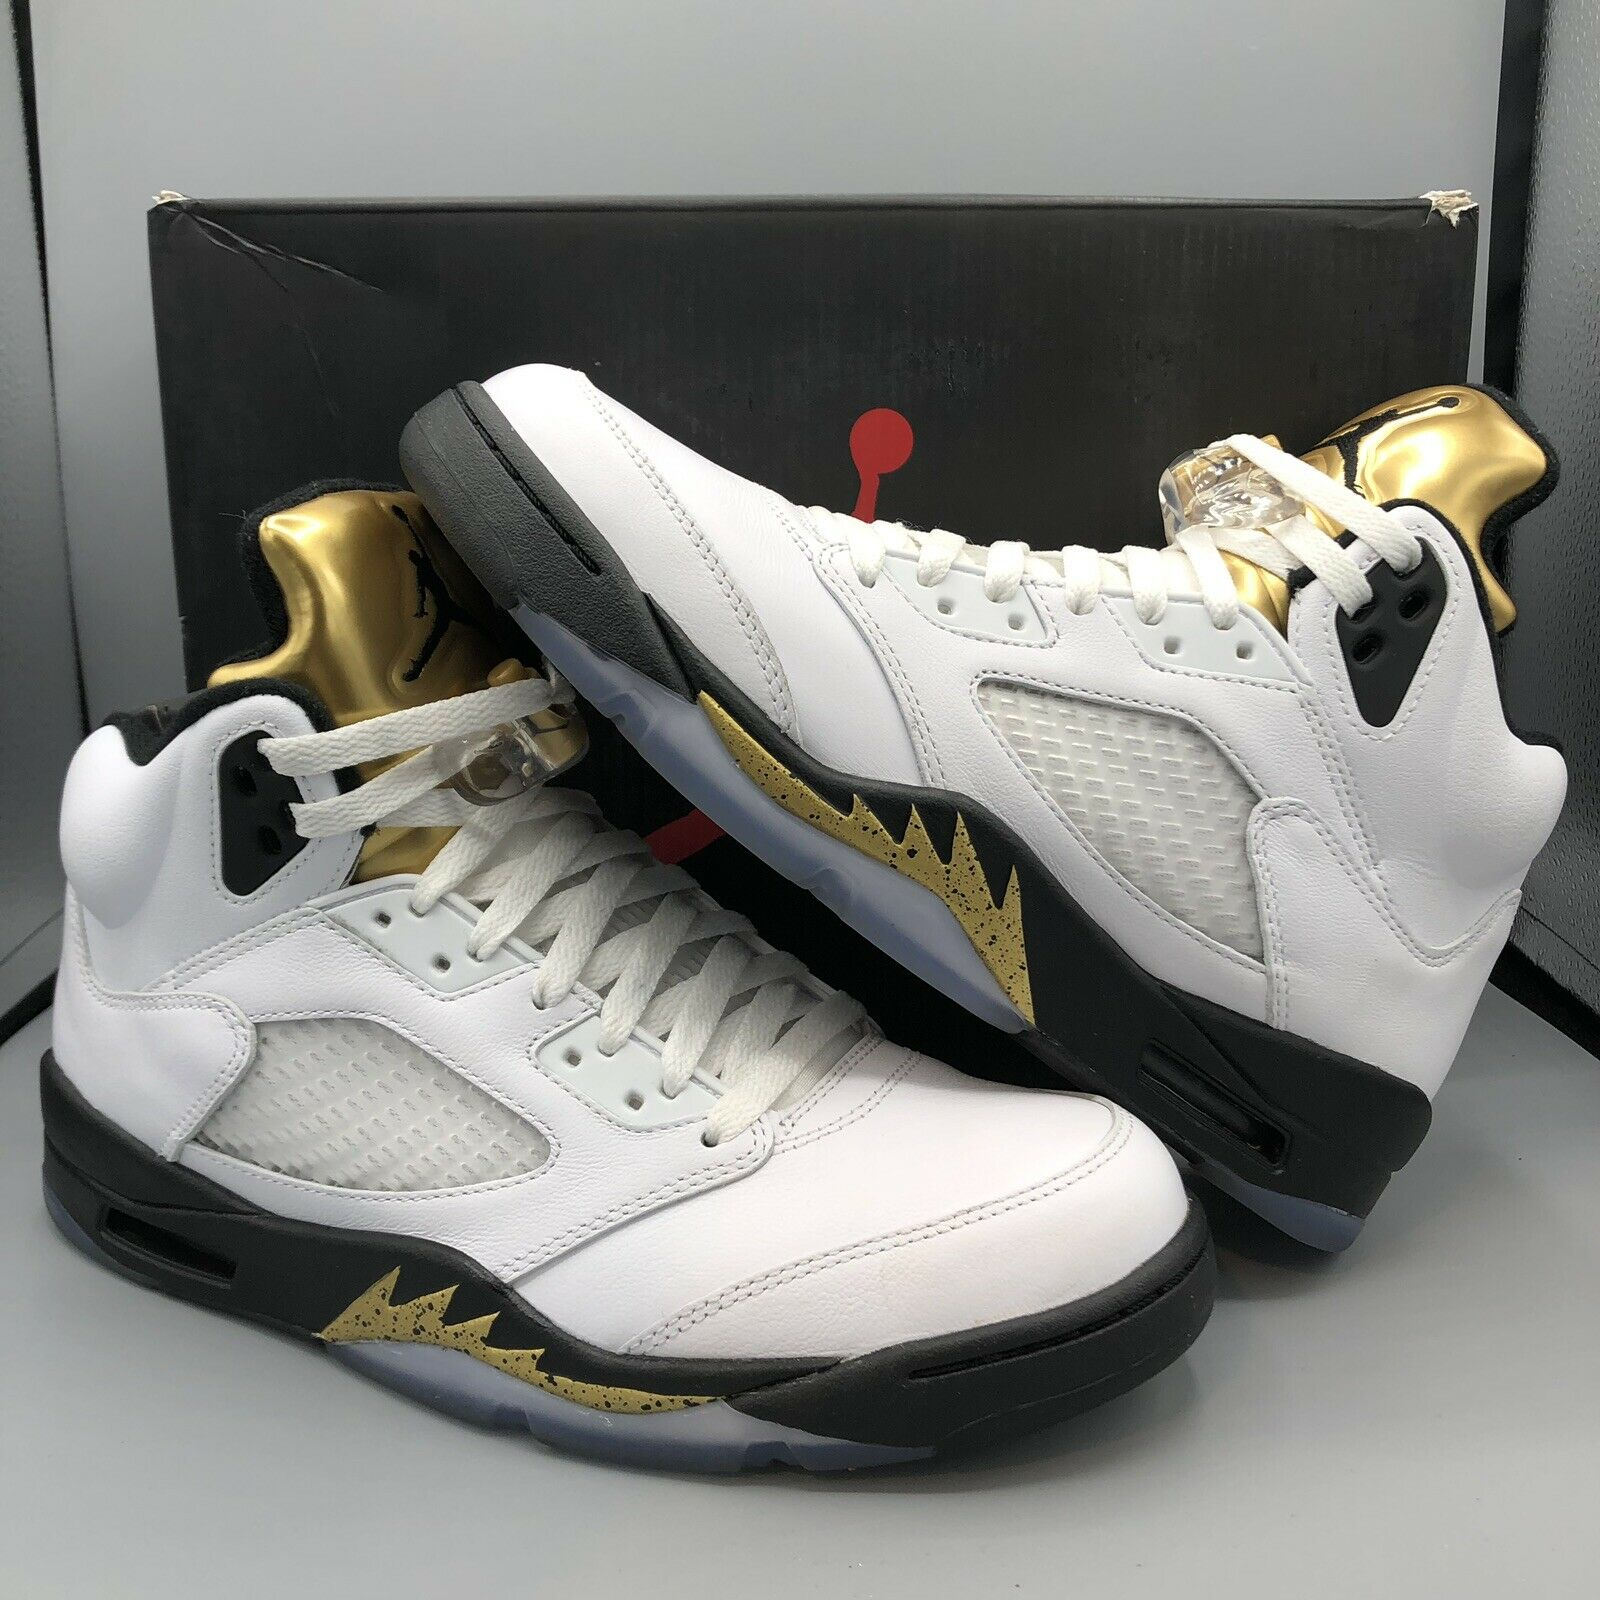 Nike Air Jordan Retro V Black Metallic gold Coin White Size 9.5 XI IV Royalty